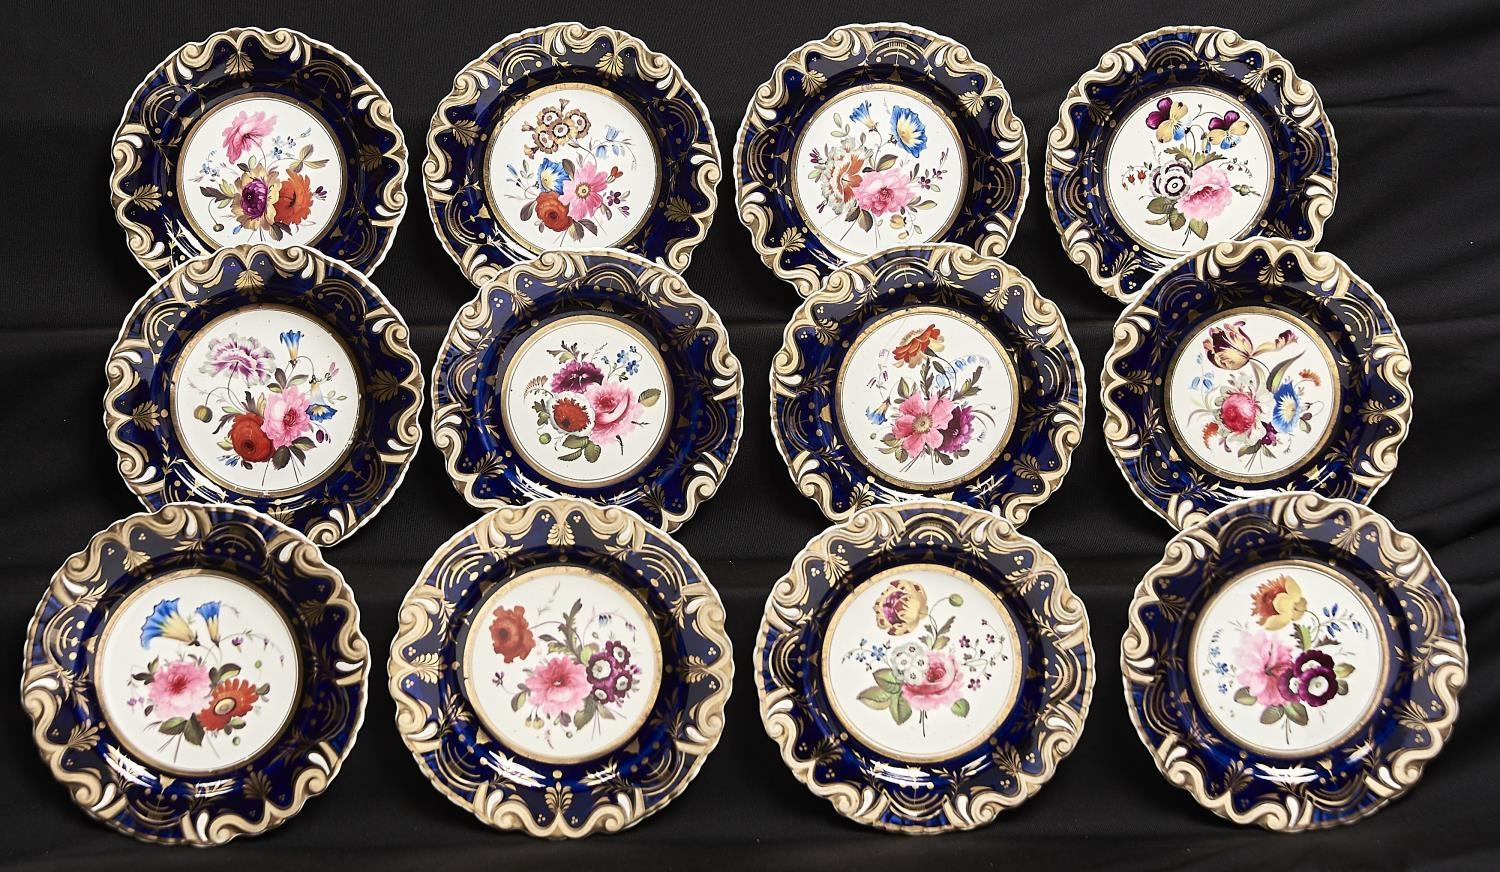 A SET OF TWELVE JOHN AND WILLIAM RIDGWAY DESSERT PLATES, C1825, PAINTED WITH FLOWERS IN MOULDED BLUE